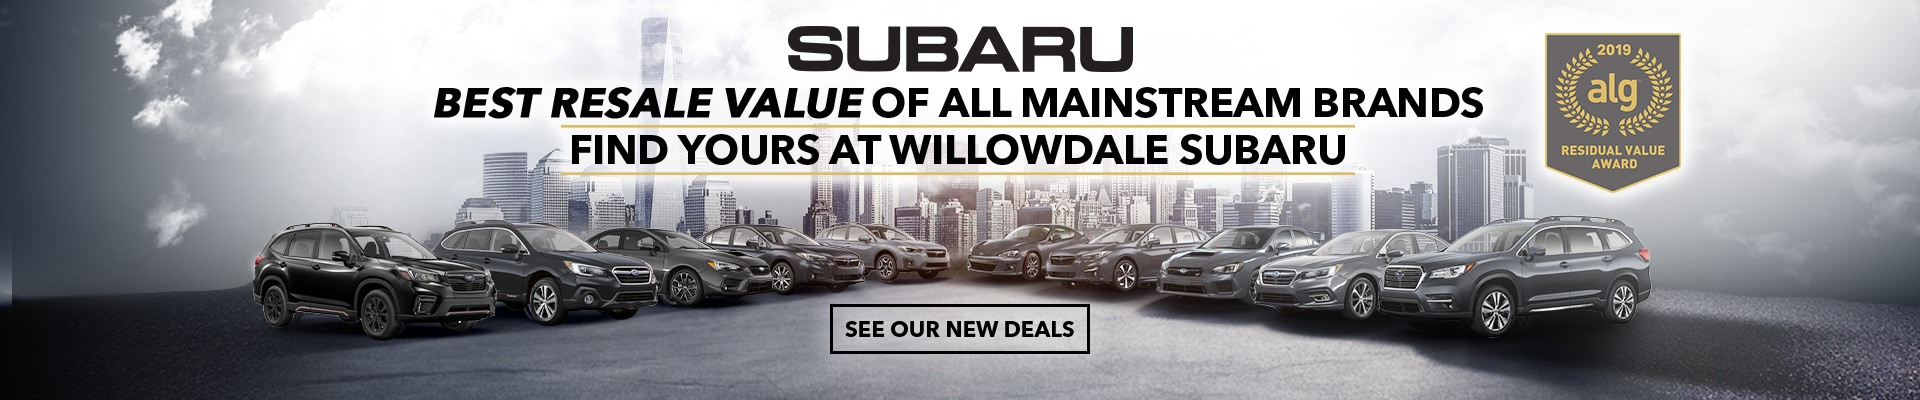 Subaru_Willowdale_Widget_1920x400_BestResaleValue